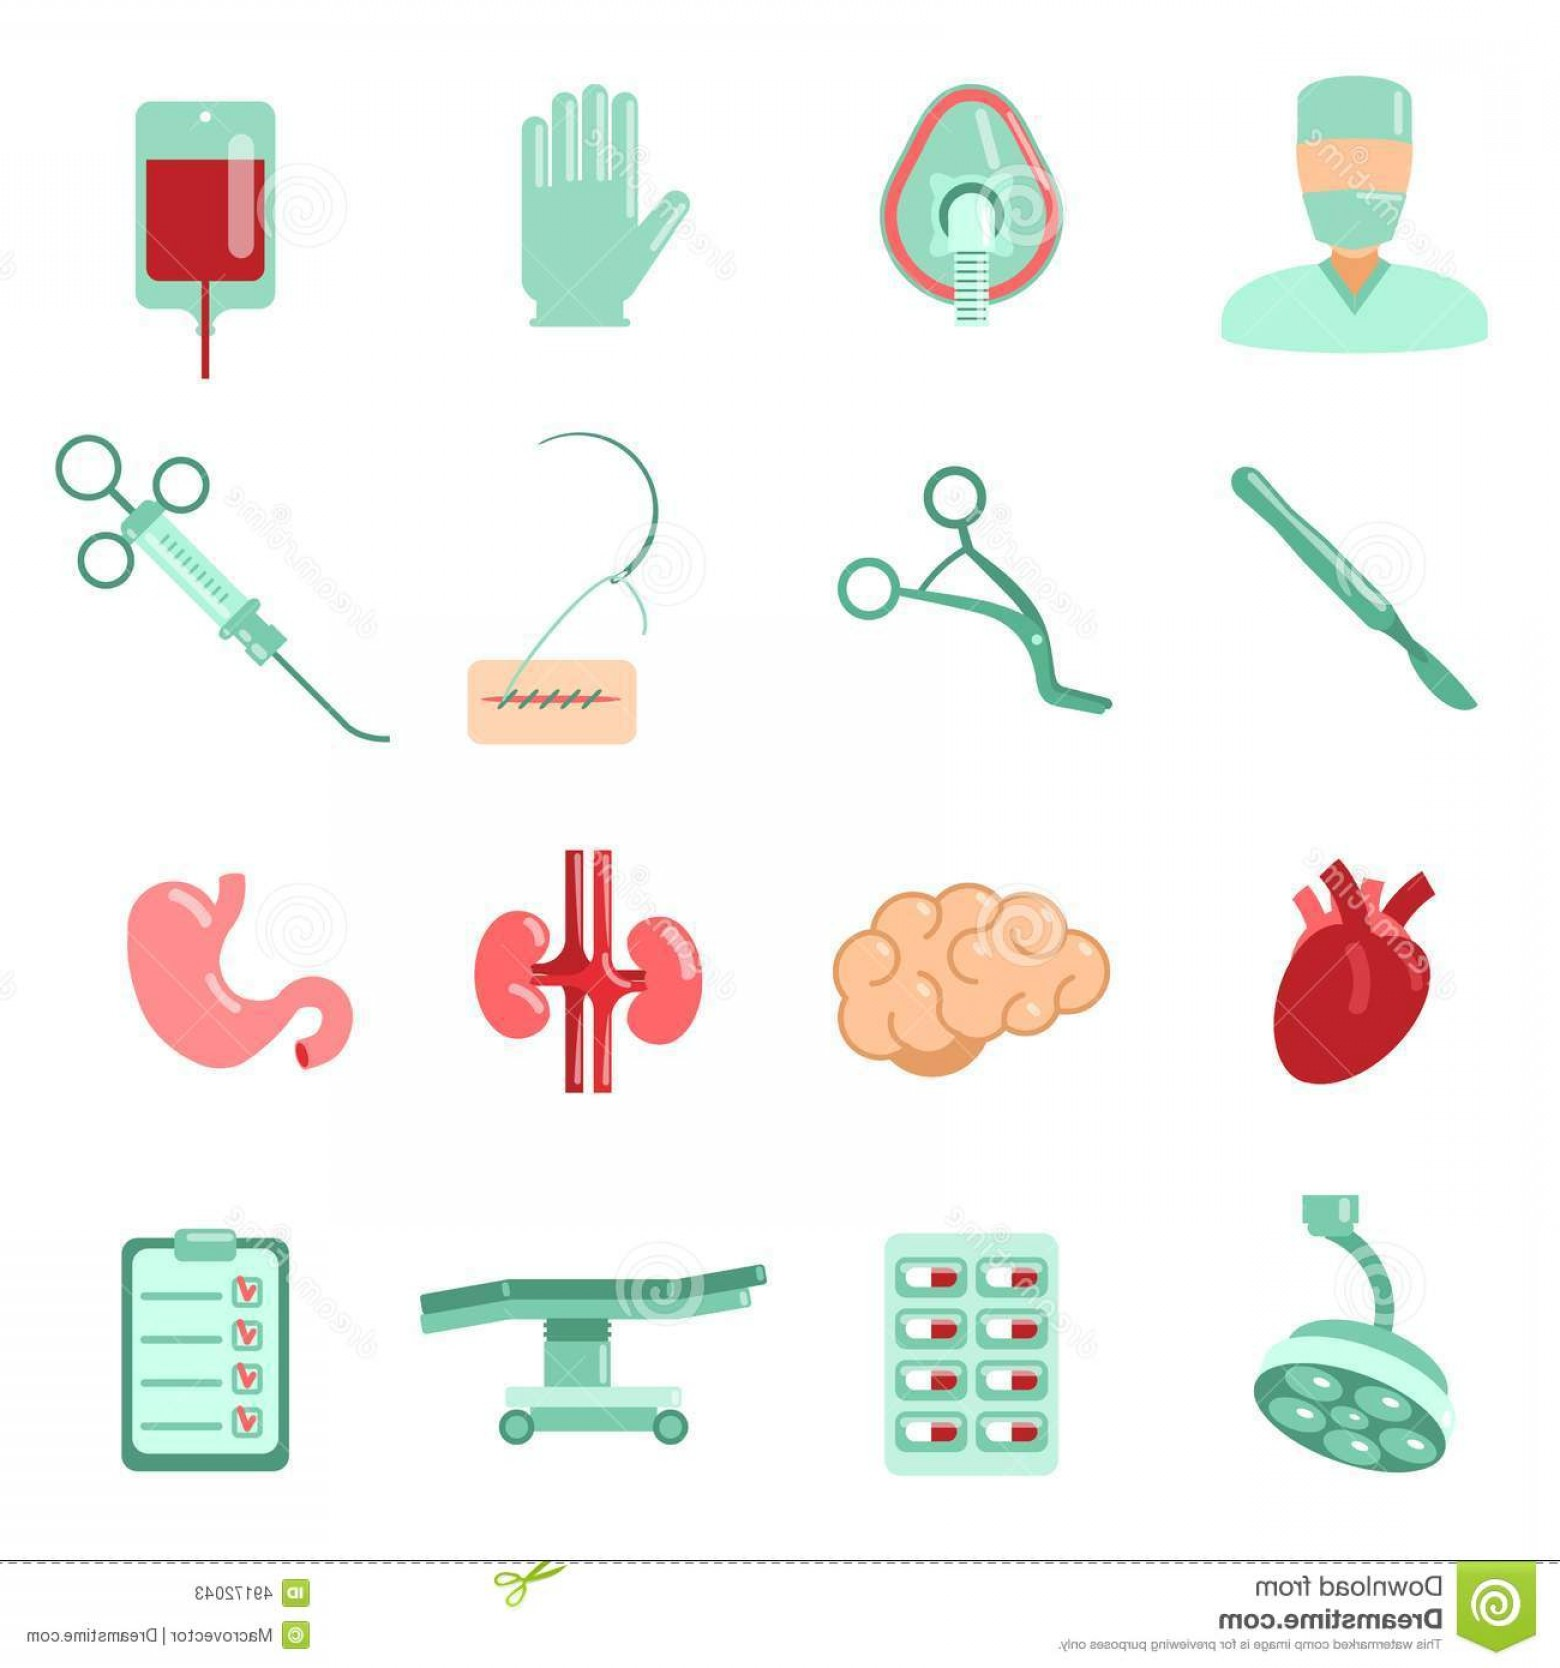 Surgery Icon Vector: Stock Illustration Surgery Icons Set Aesthetic Plastic Operation Hospital Isolated Vector Illustration Image